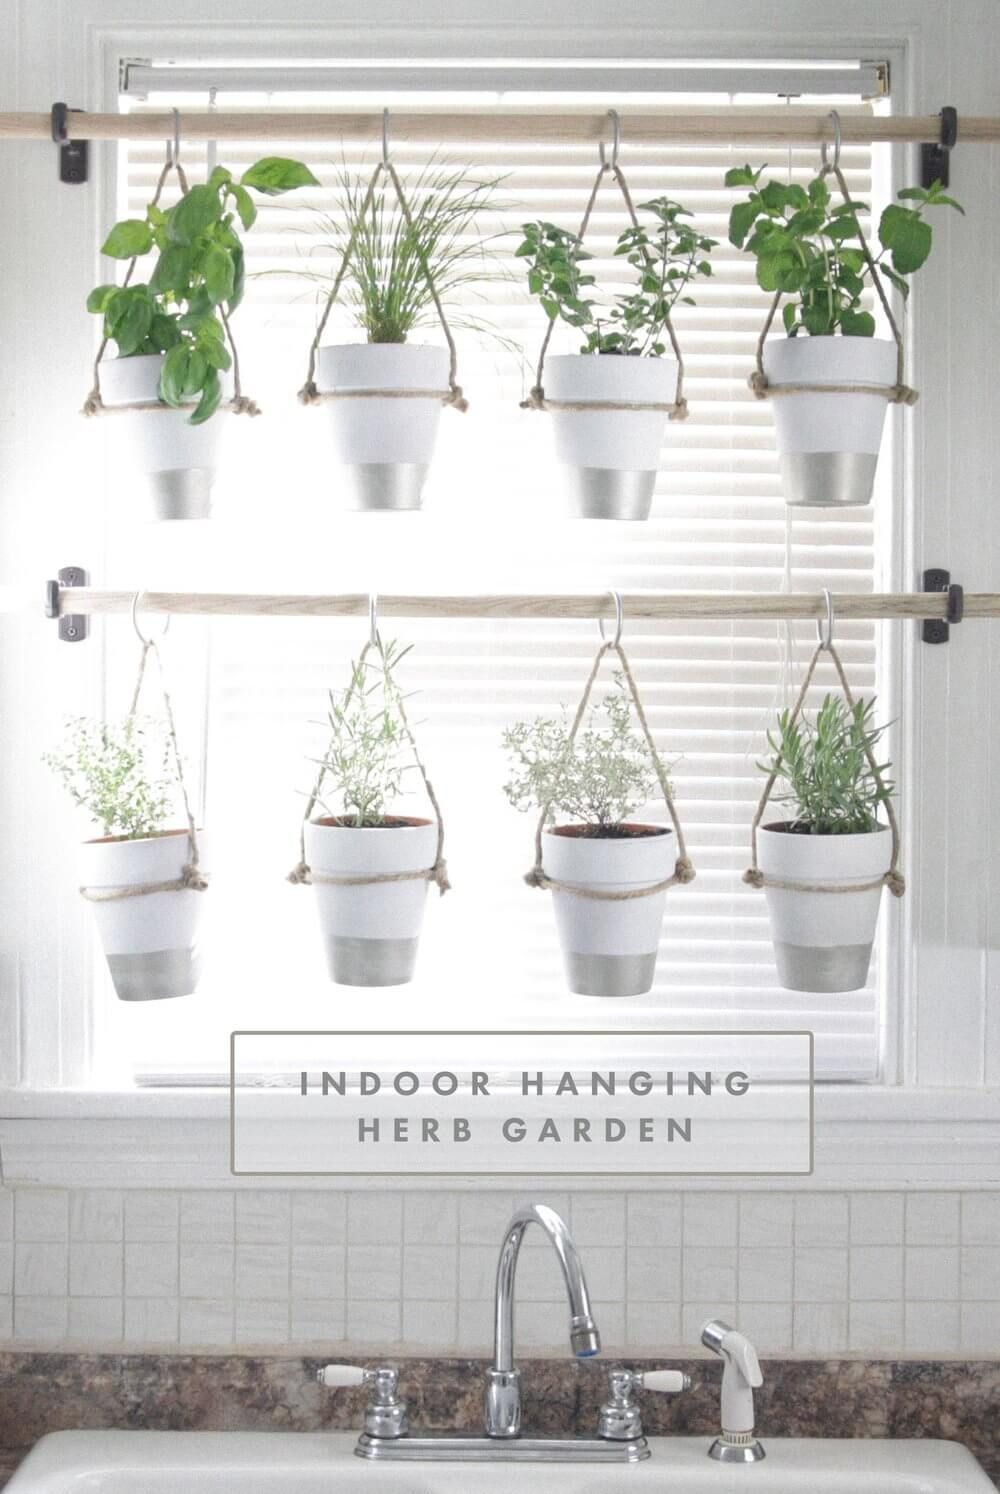 25 creative herb garden ideas for indoors and outdoors paint pots 25 creative herb garden ideas for indoors and outdoors workwithnaturefo